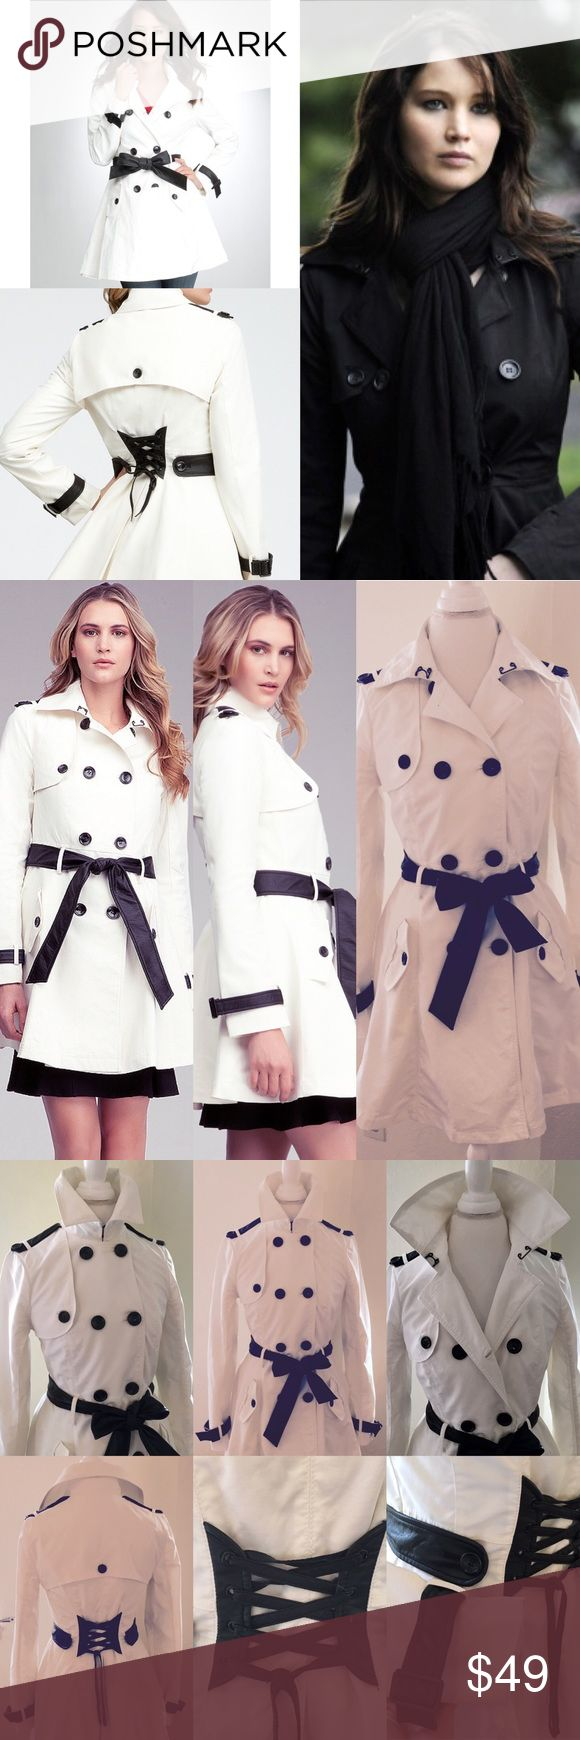 BEBE White&Black Contrast Trim Belted Trench Coat A must-have staple in everyone woman's closet, this bebe trench coat exudes charm and classic style. Features double-breast styling, front pockets, black leatherette trim at sleeves and waist, A-line flare, and sexy laced-up design at back. No longer available in this stunning winter white color (egret/black). Fell in love with how flattering this trench is. Effortless & timeless style. Excellent condition overall; see pic of 1 small…